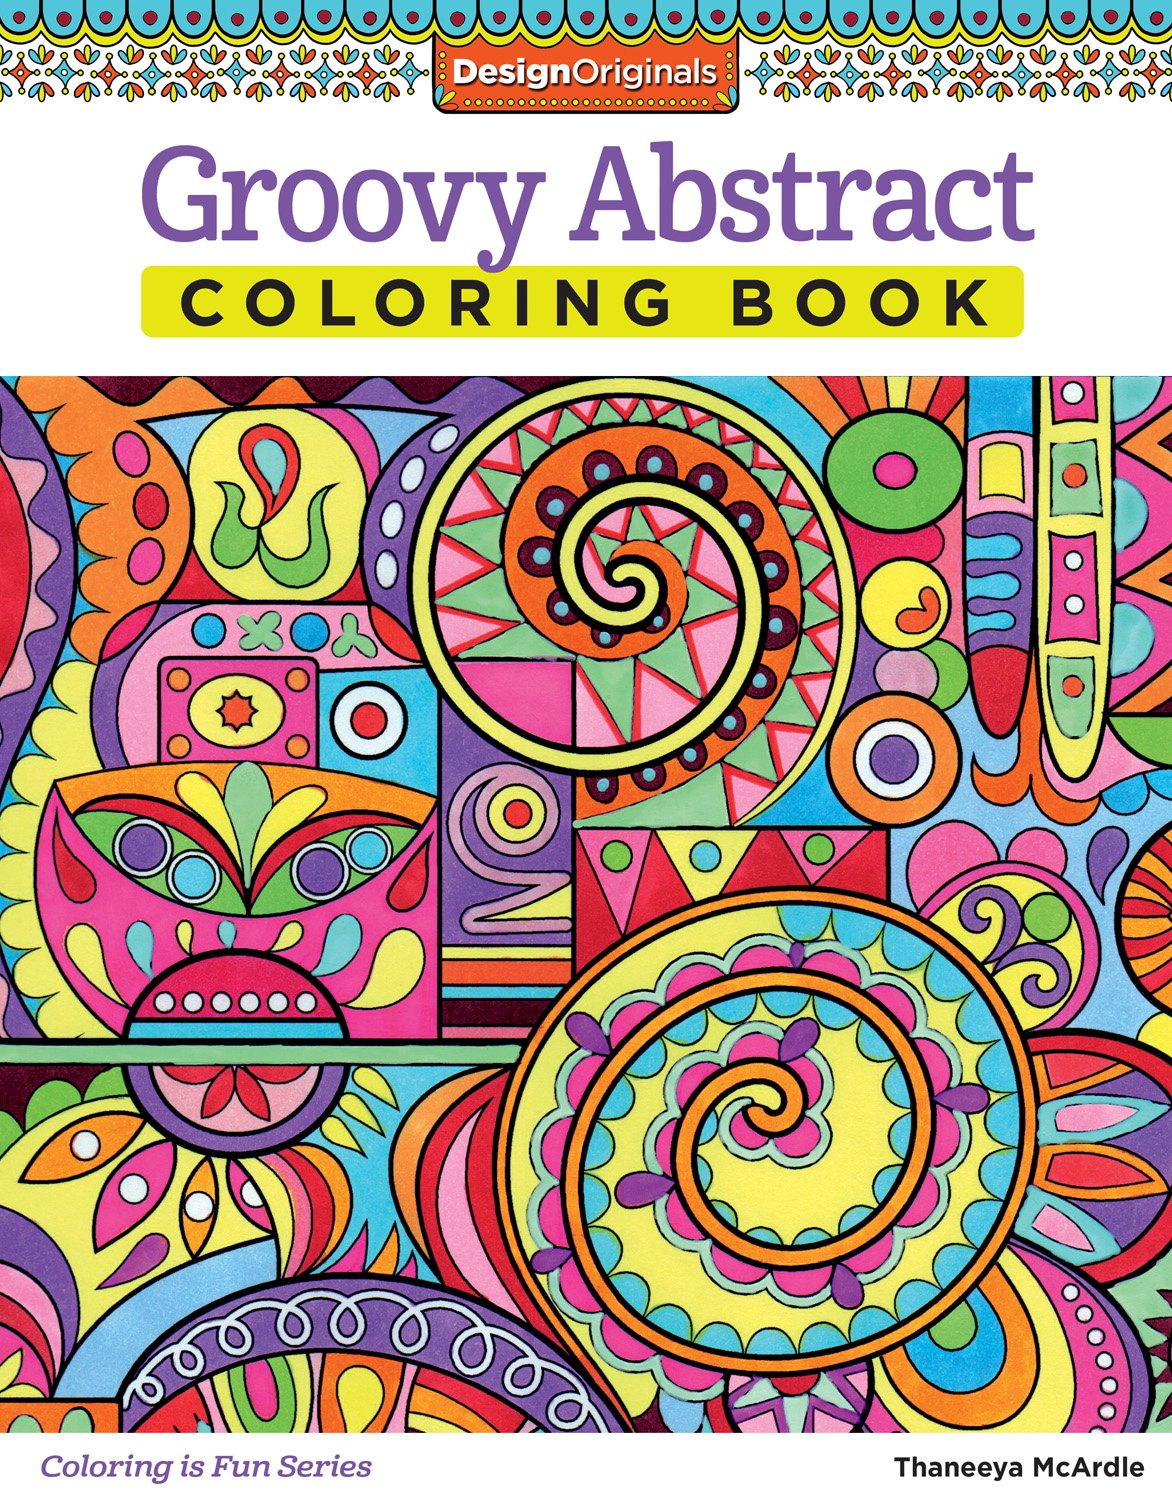 Groovy Abstract Coloring Book Amazonca Thaneeya McArdle Books